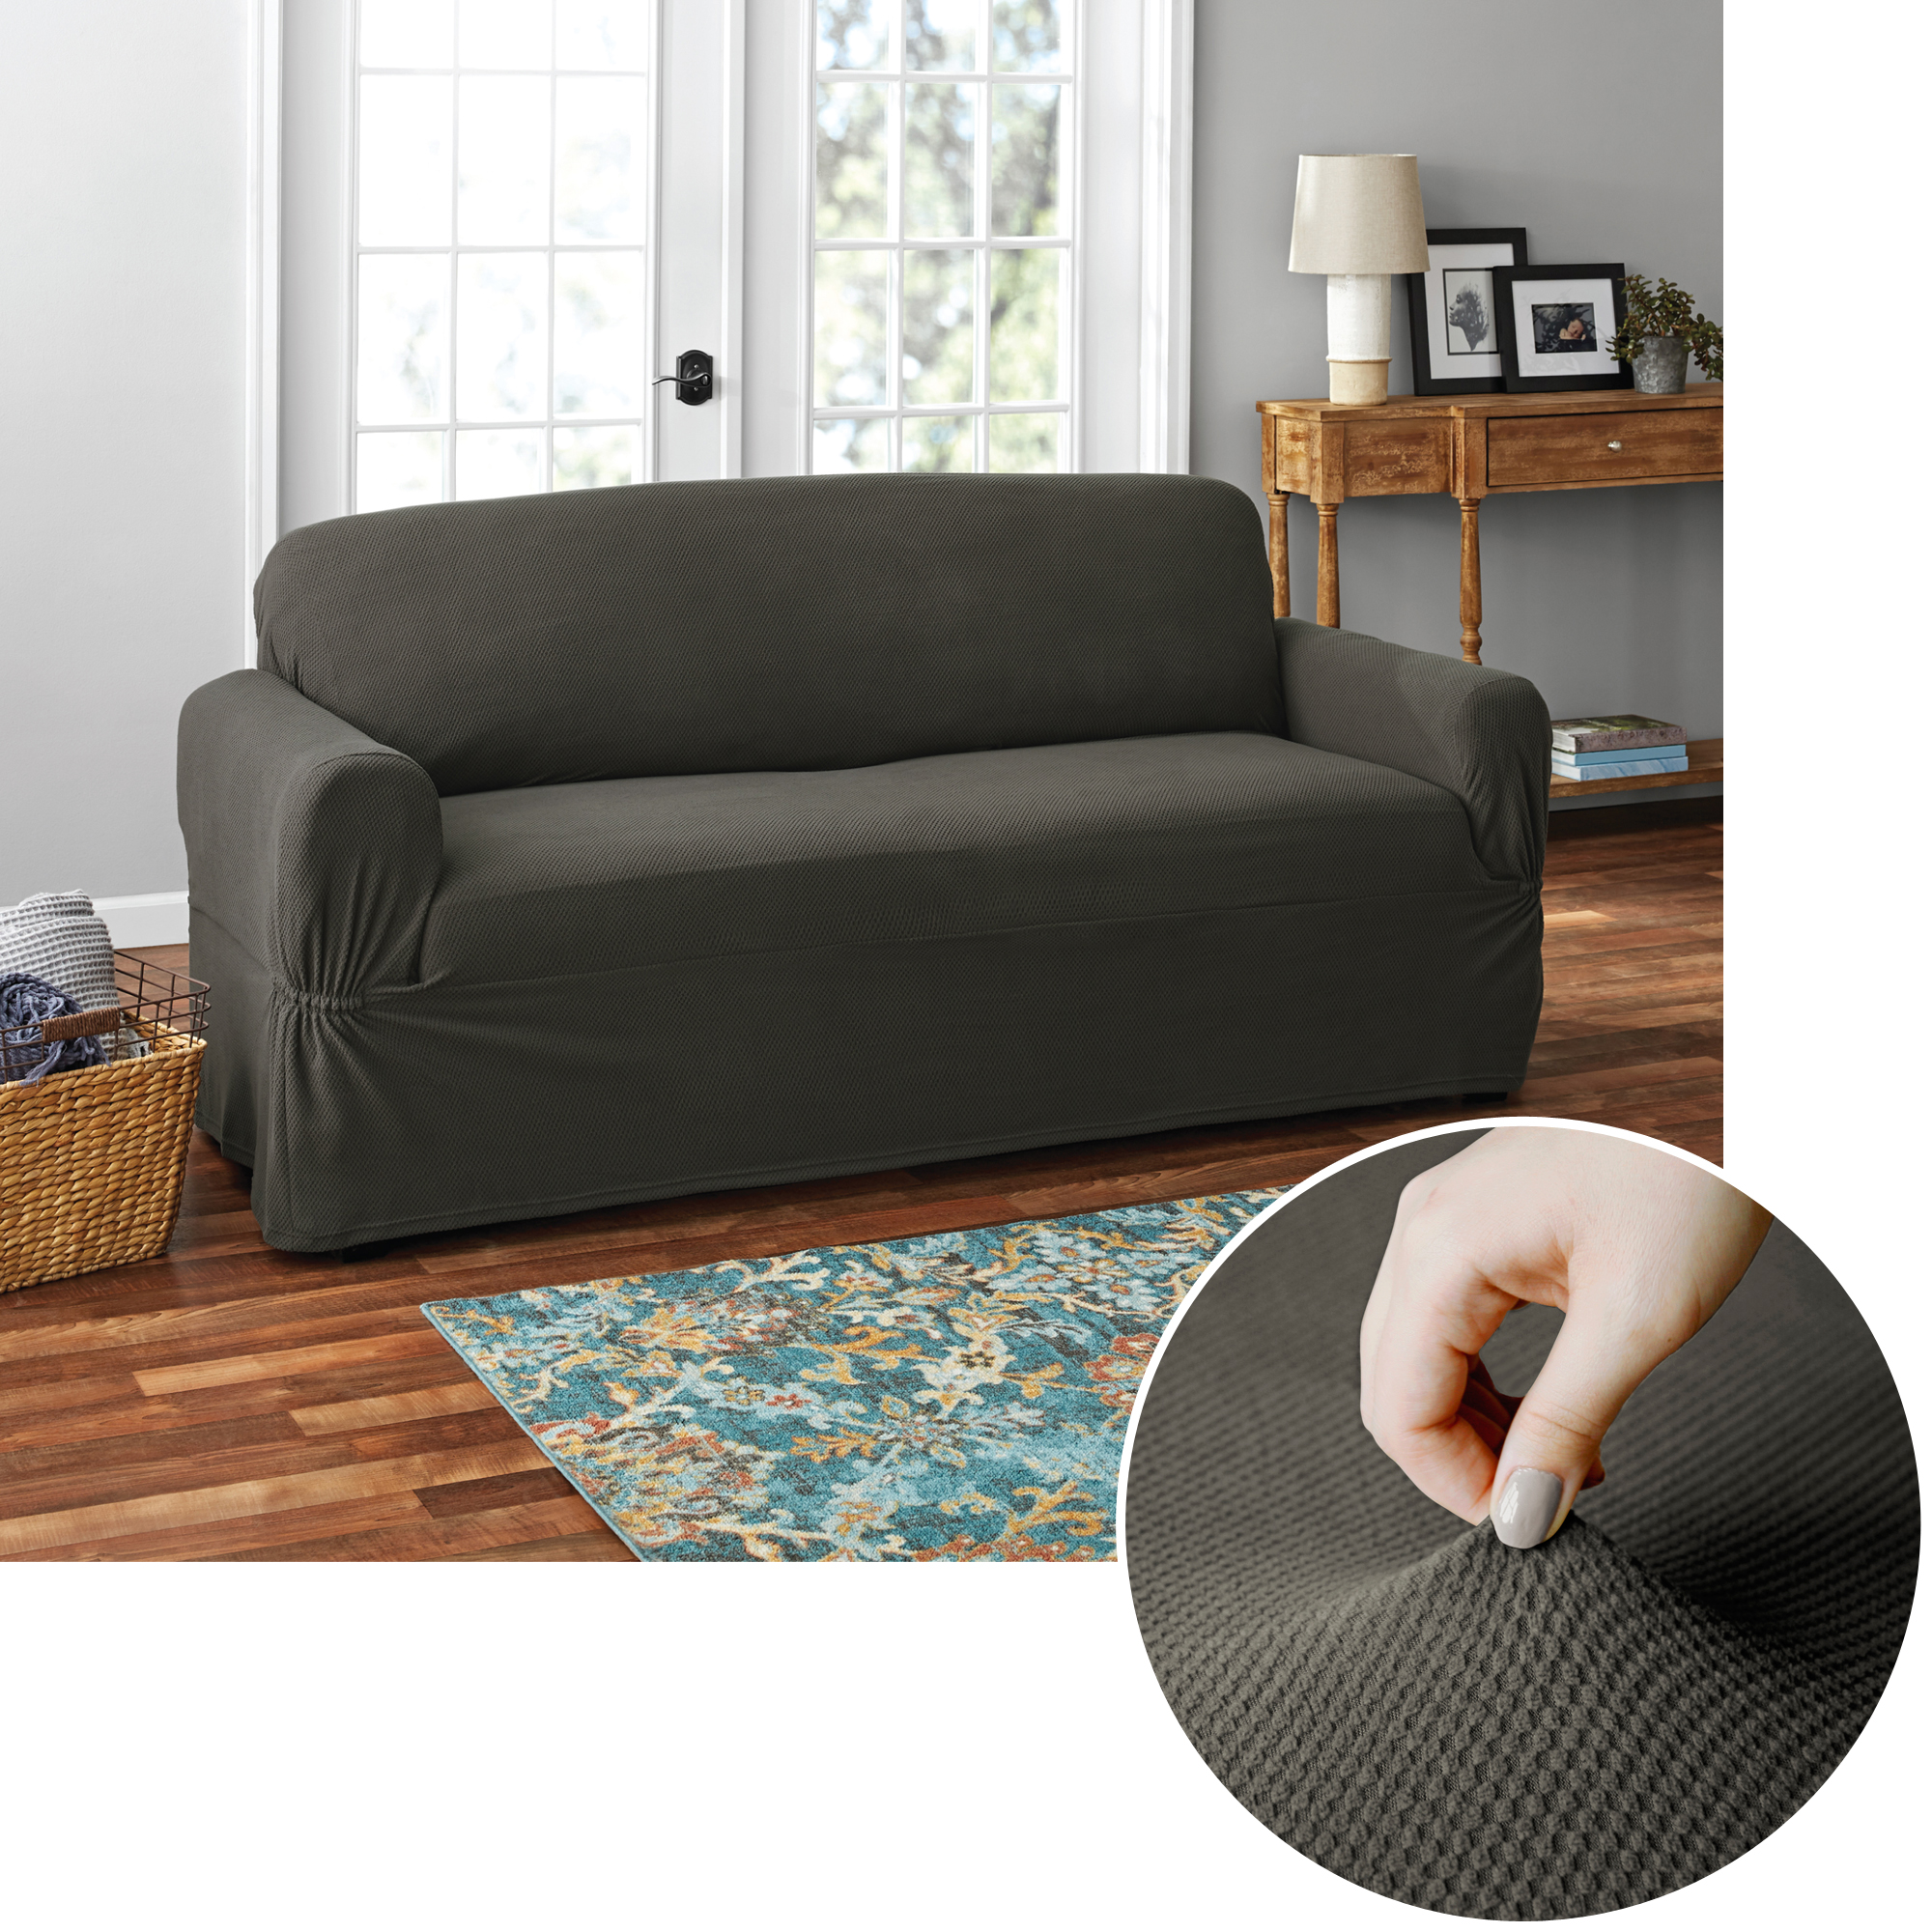 Fabulous Mainstays Pixel 1 Piece Stretch Loveseat Furniture Cover Gray Walmart Com Gmtry Best Dining Table And Chair Ideas Images Gmtryco